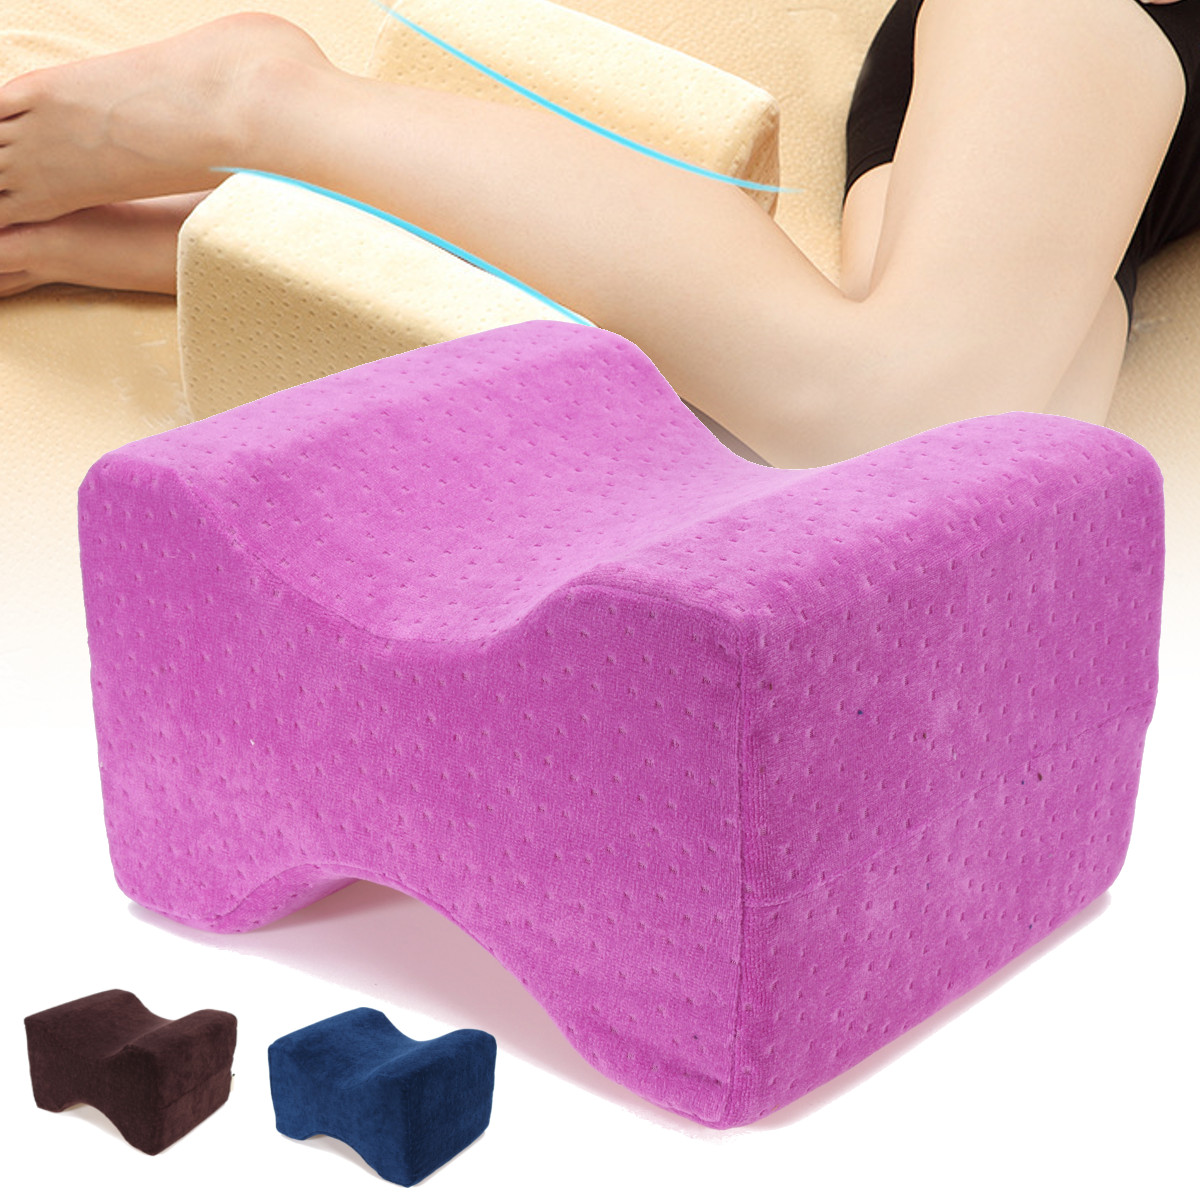 """10.2""""x 8.7""""x 5.9"""" Memory Foam Knee Leg Pillow Bed Cushion Pressure Relief Sleep Posture Support with Cover"""